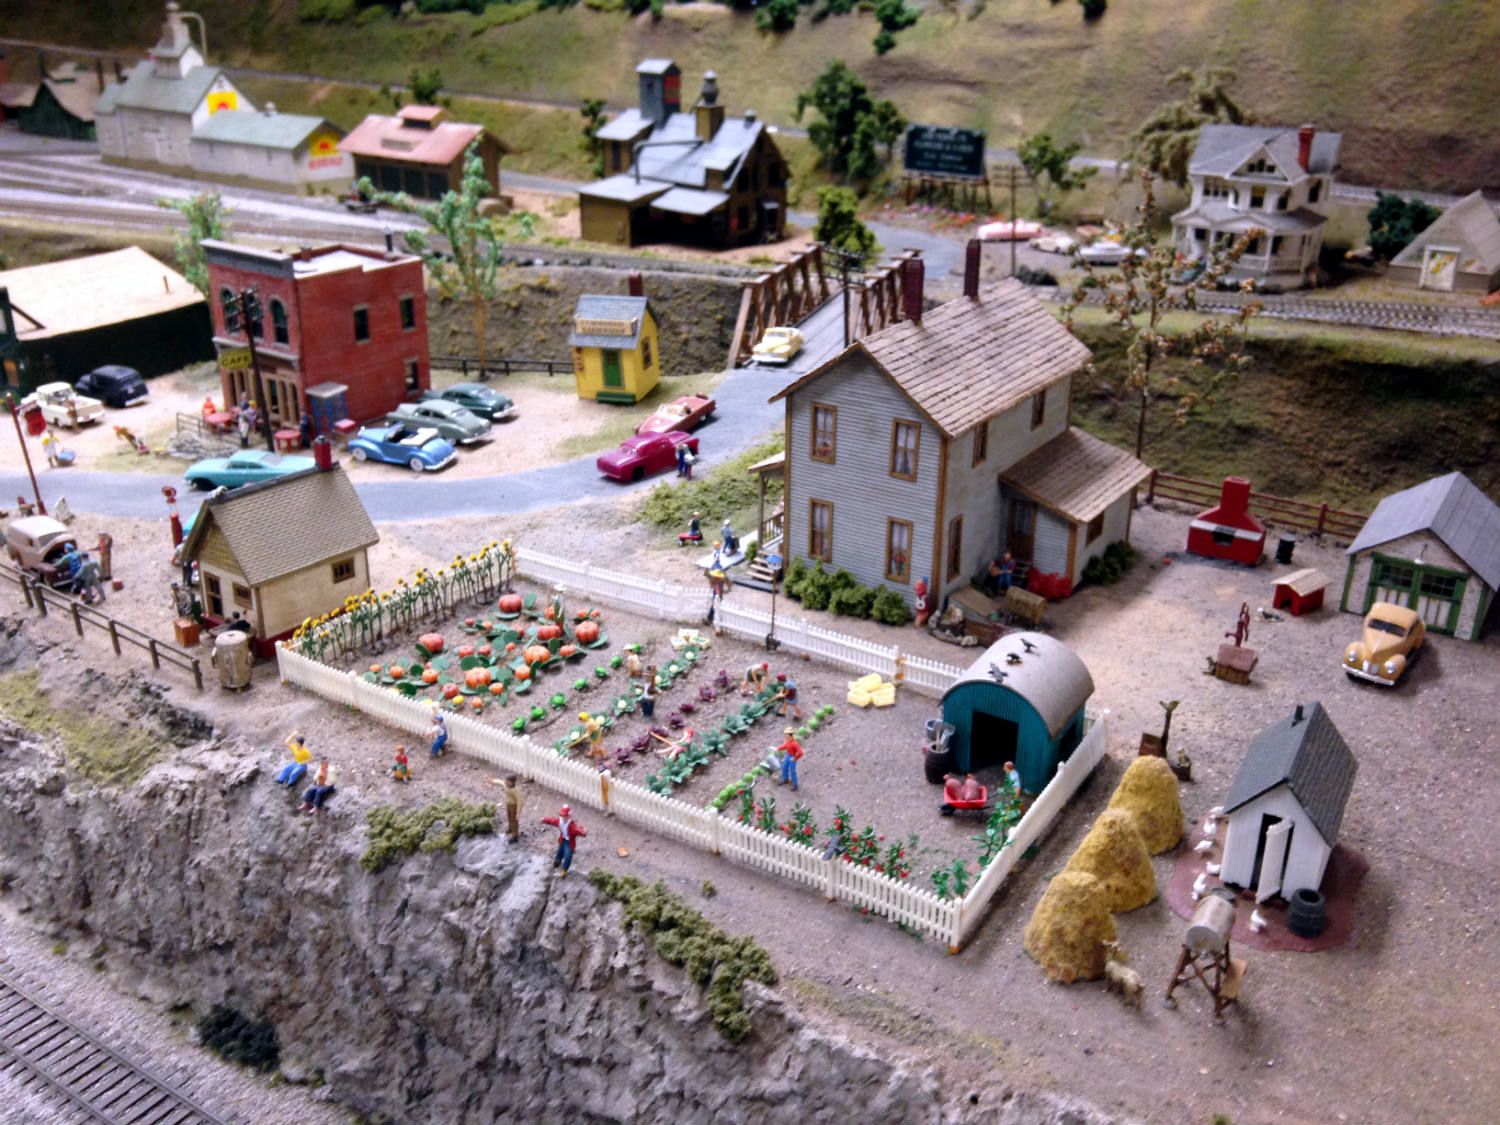 Farm Scene Model Railroad at Medina Railroad Museum in Medina, NY